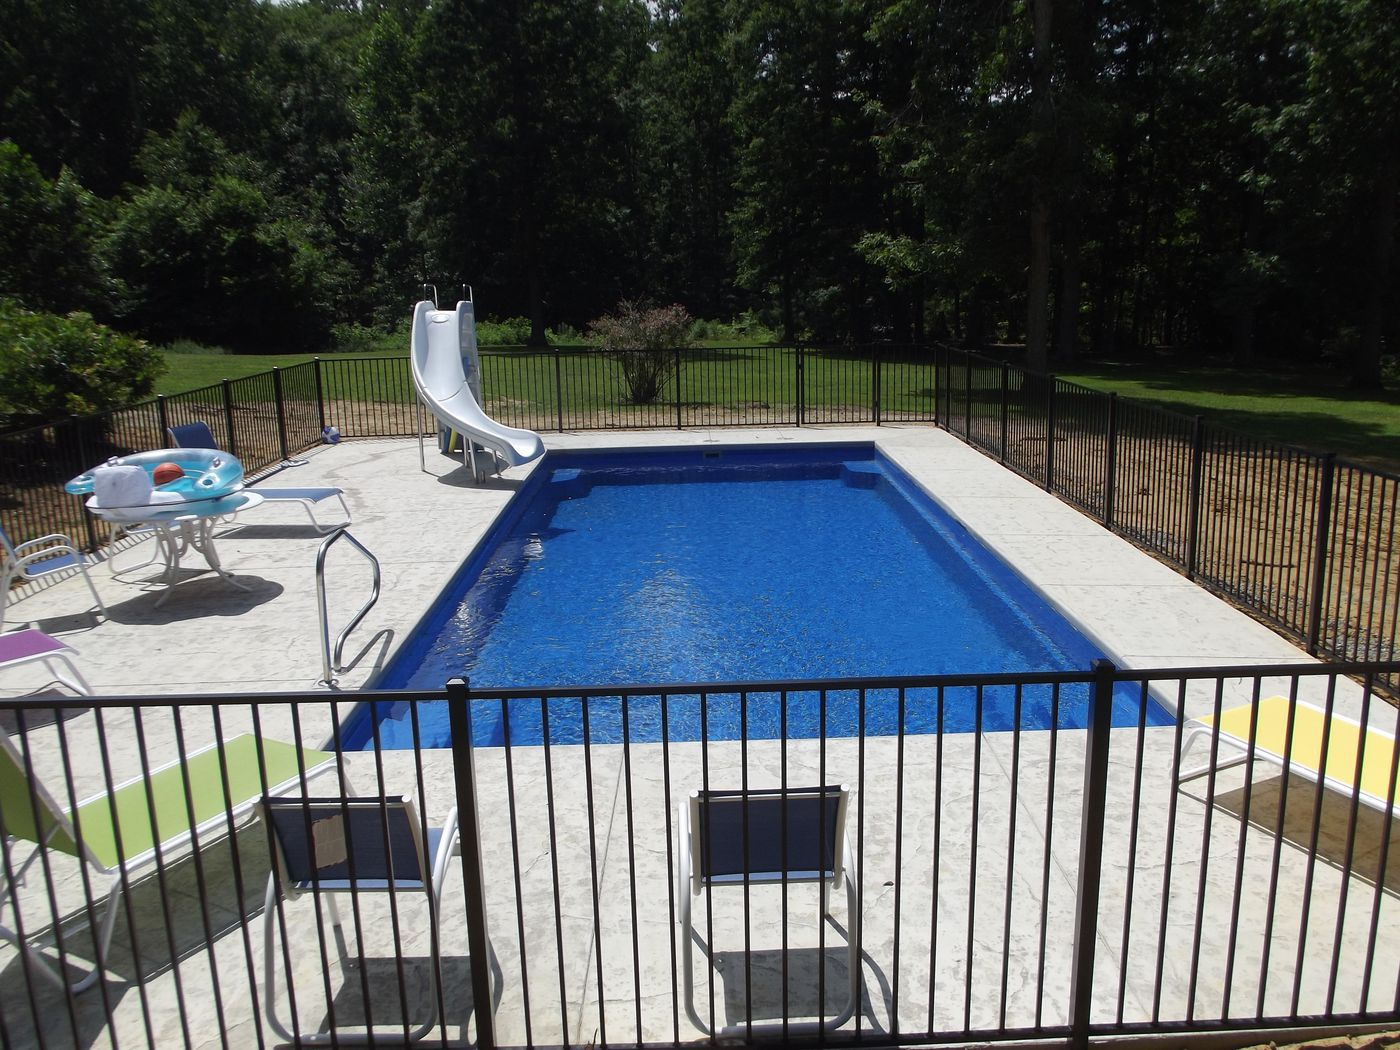 Fiberglass pools prices elegant fiberglass pools prices for Fiberglass above ground pool